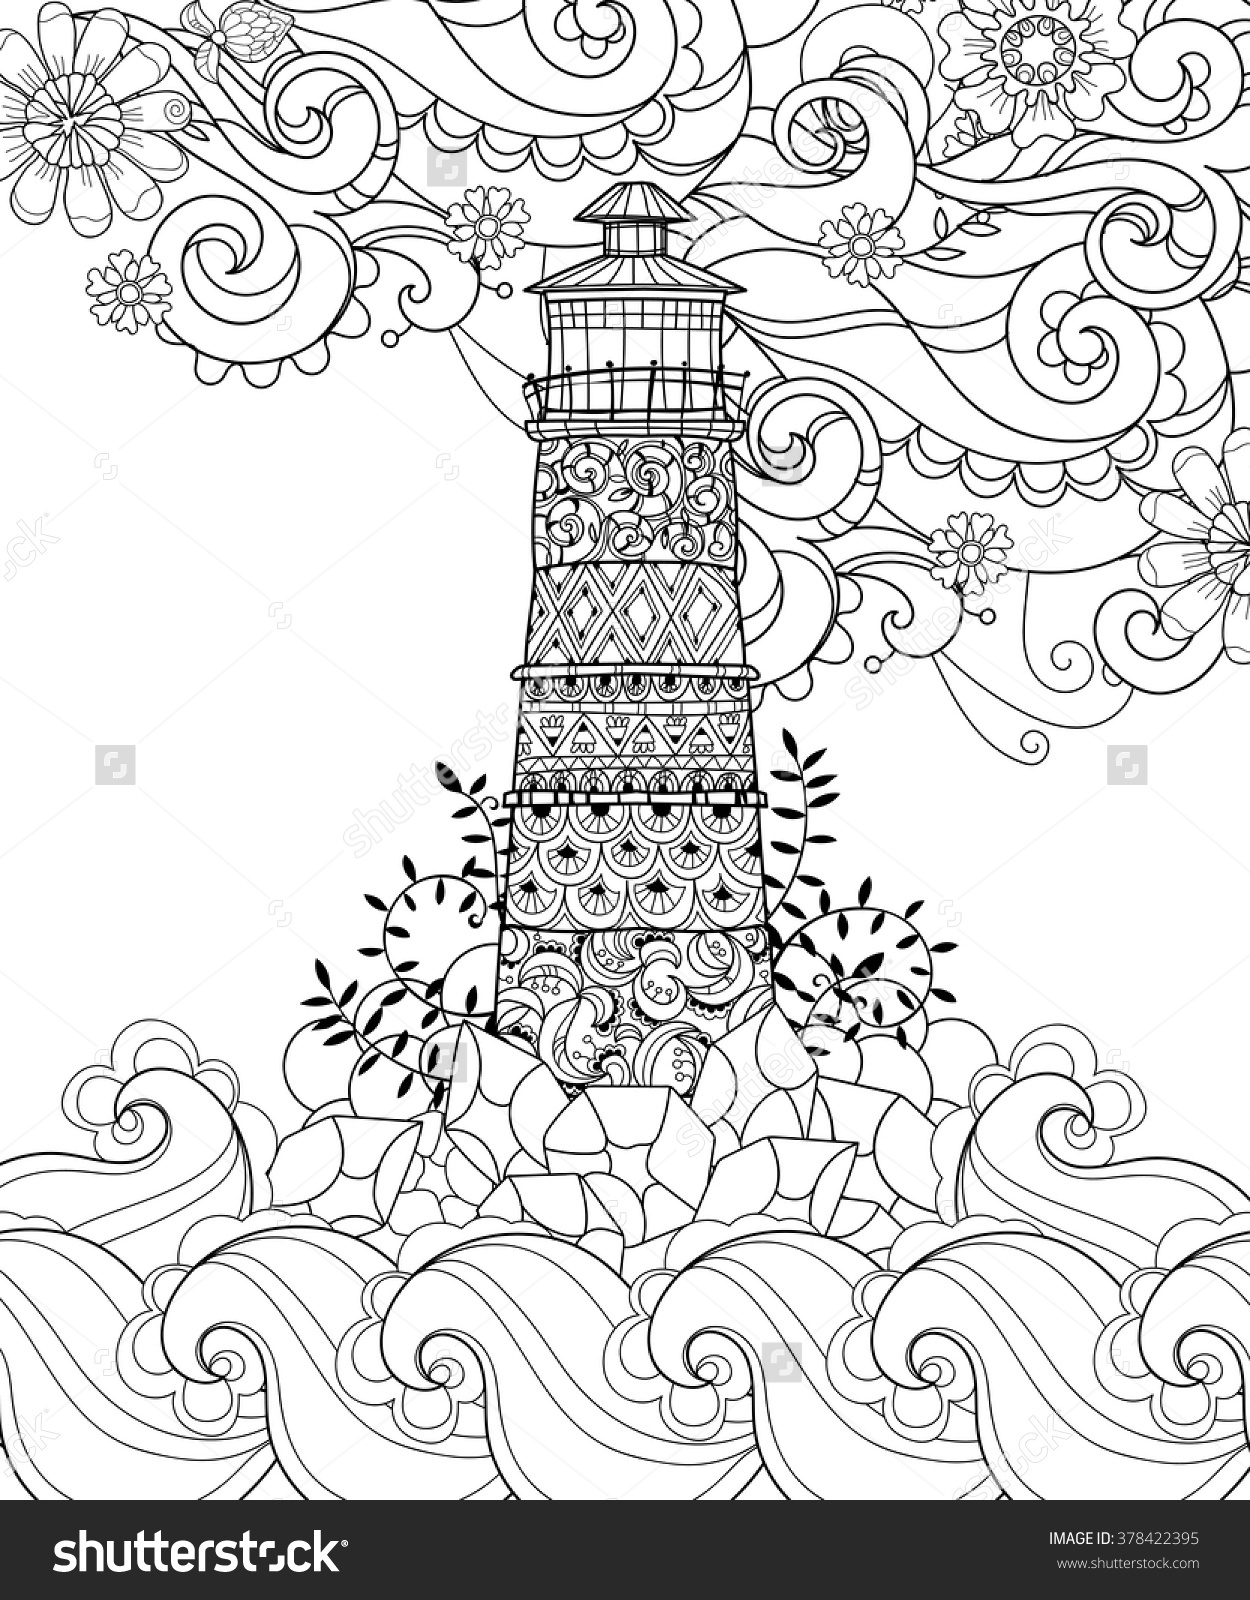 1250x1600 Hand Drawn Doodle Outline Lighthouse Decorated With Floral